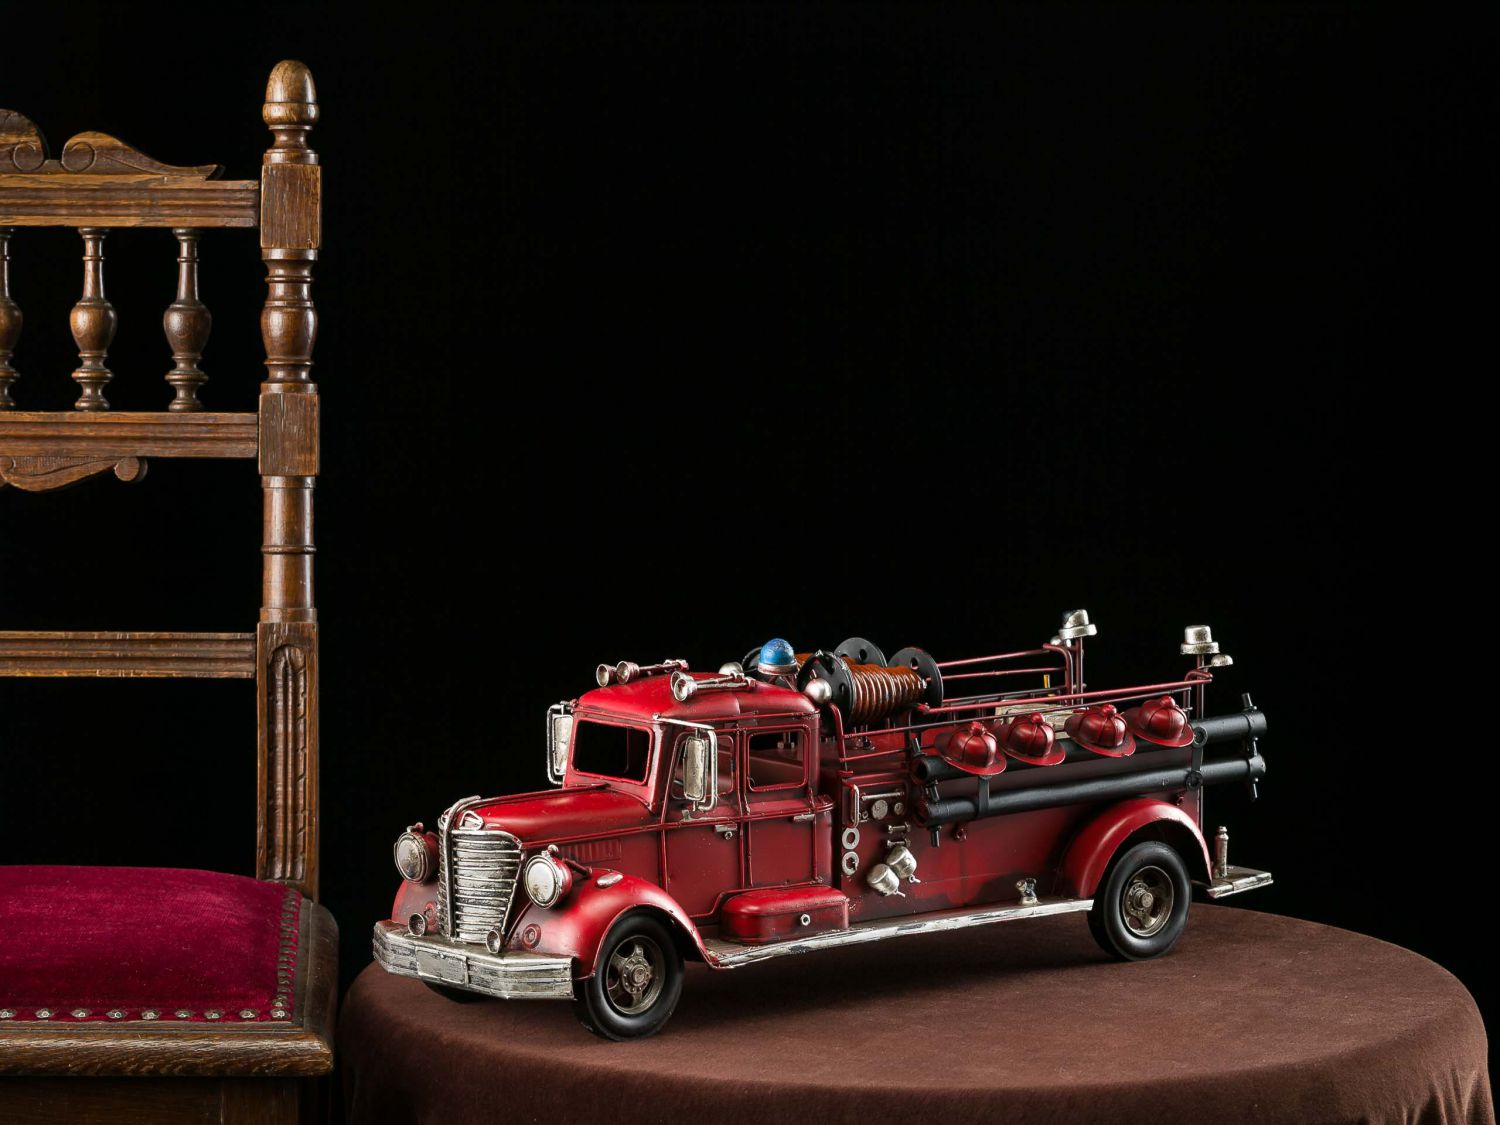 camions mod le incendie 50cm en plaque sapeurs pompiers voiture ebay. Black Bedroom Furniture Sets. Home Design Ideas